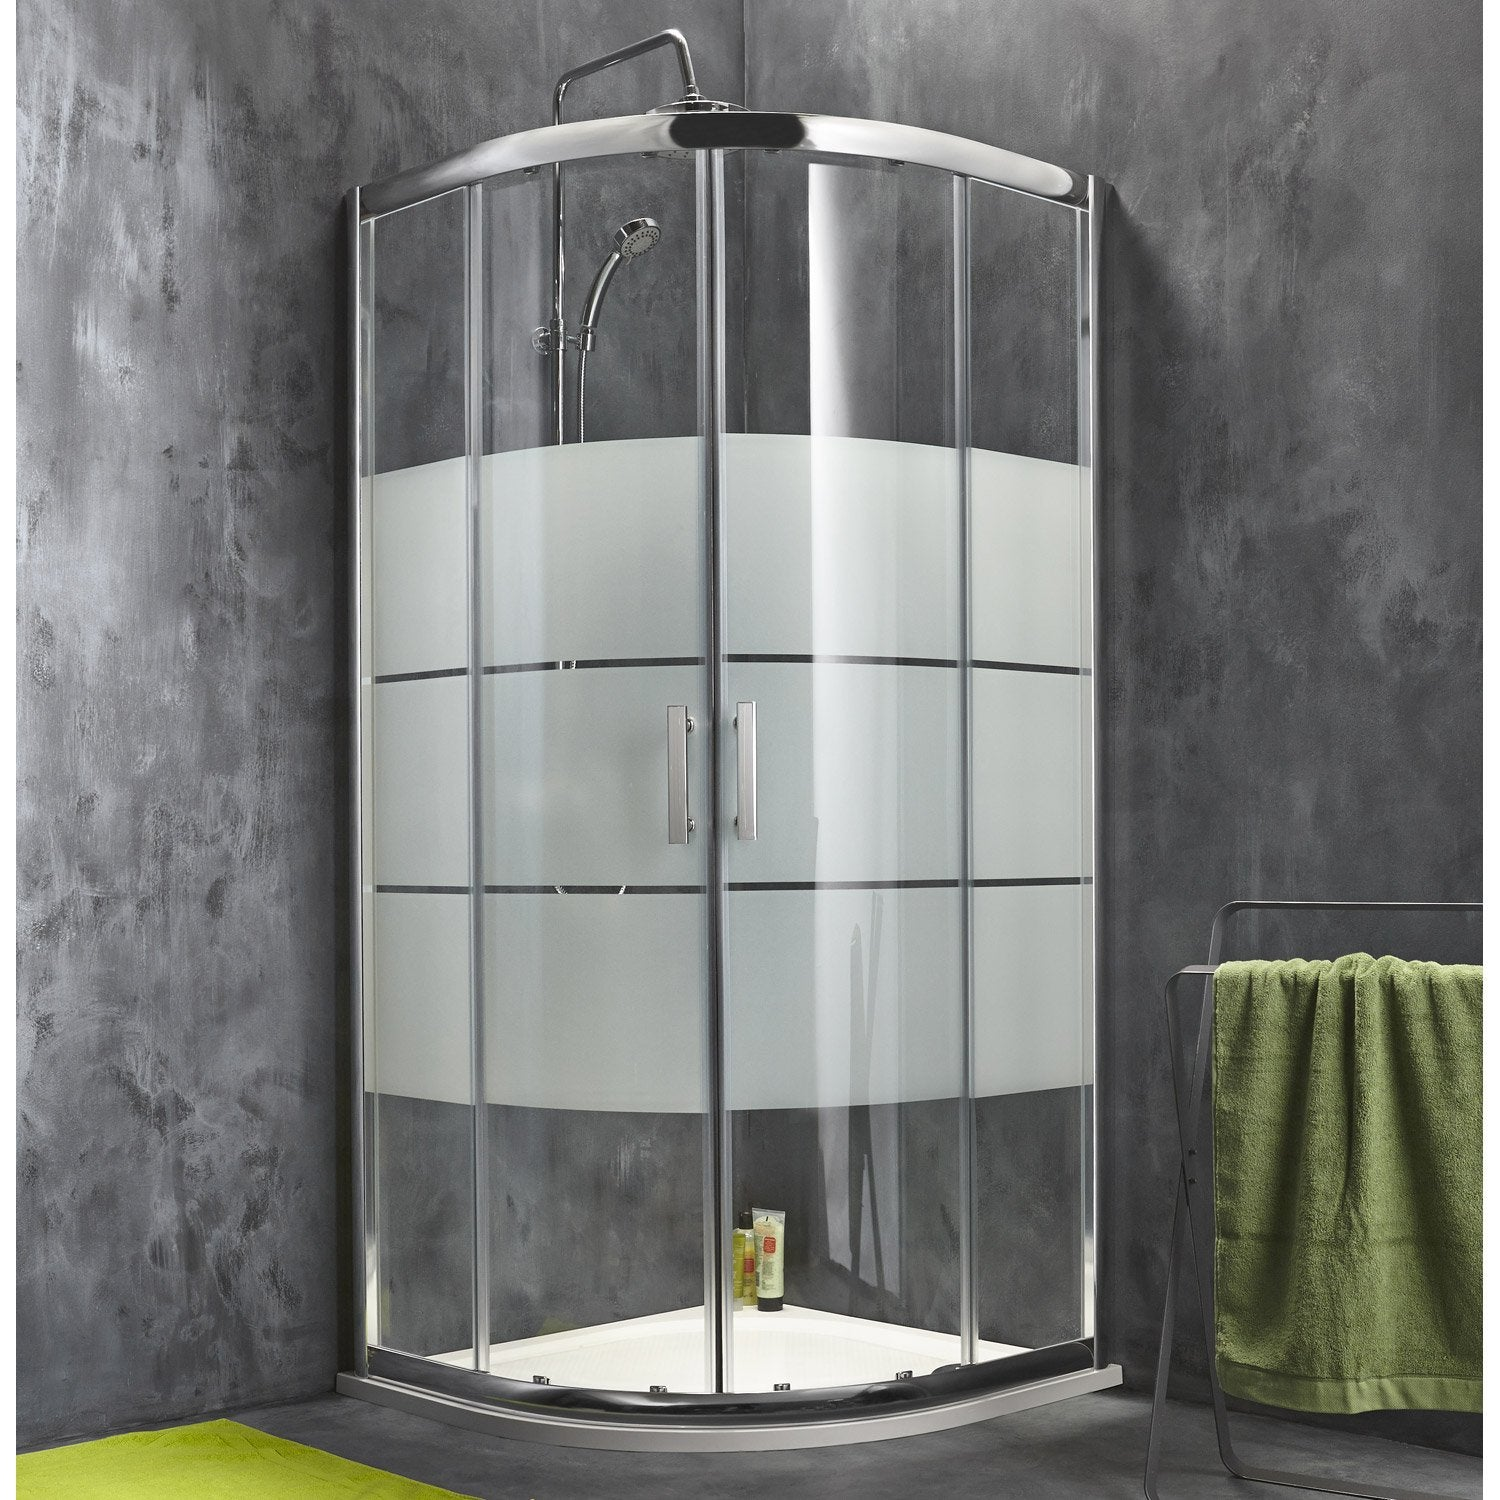 Porte de douche coulissante sensea optima 2 verre for Porte de saloon leroy merlin